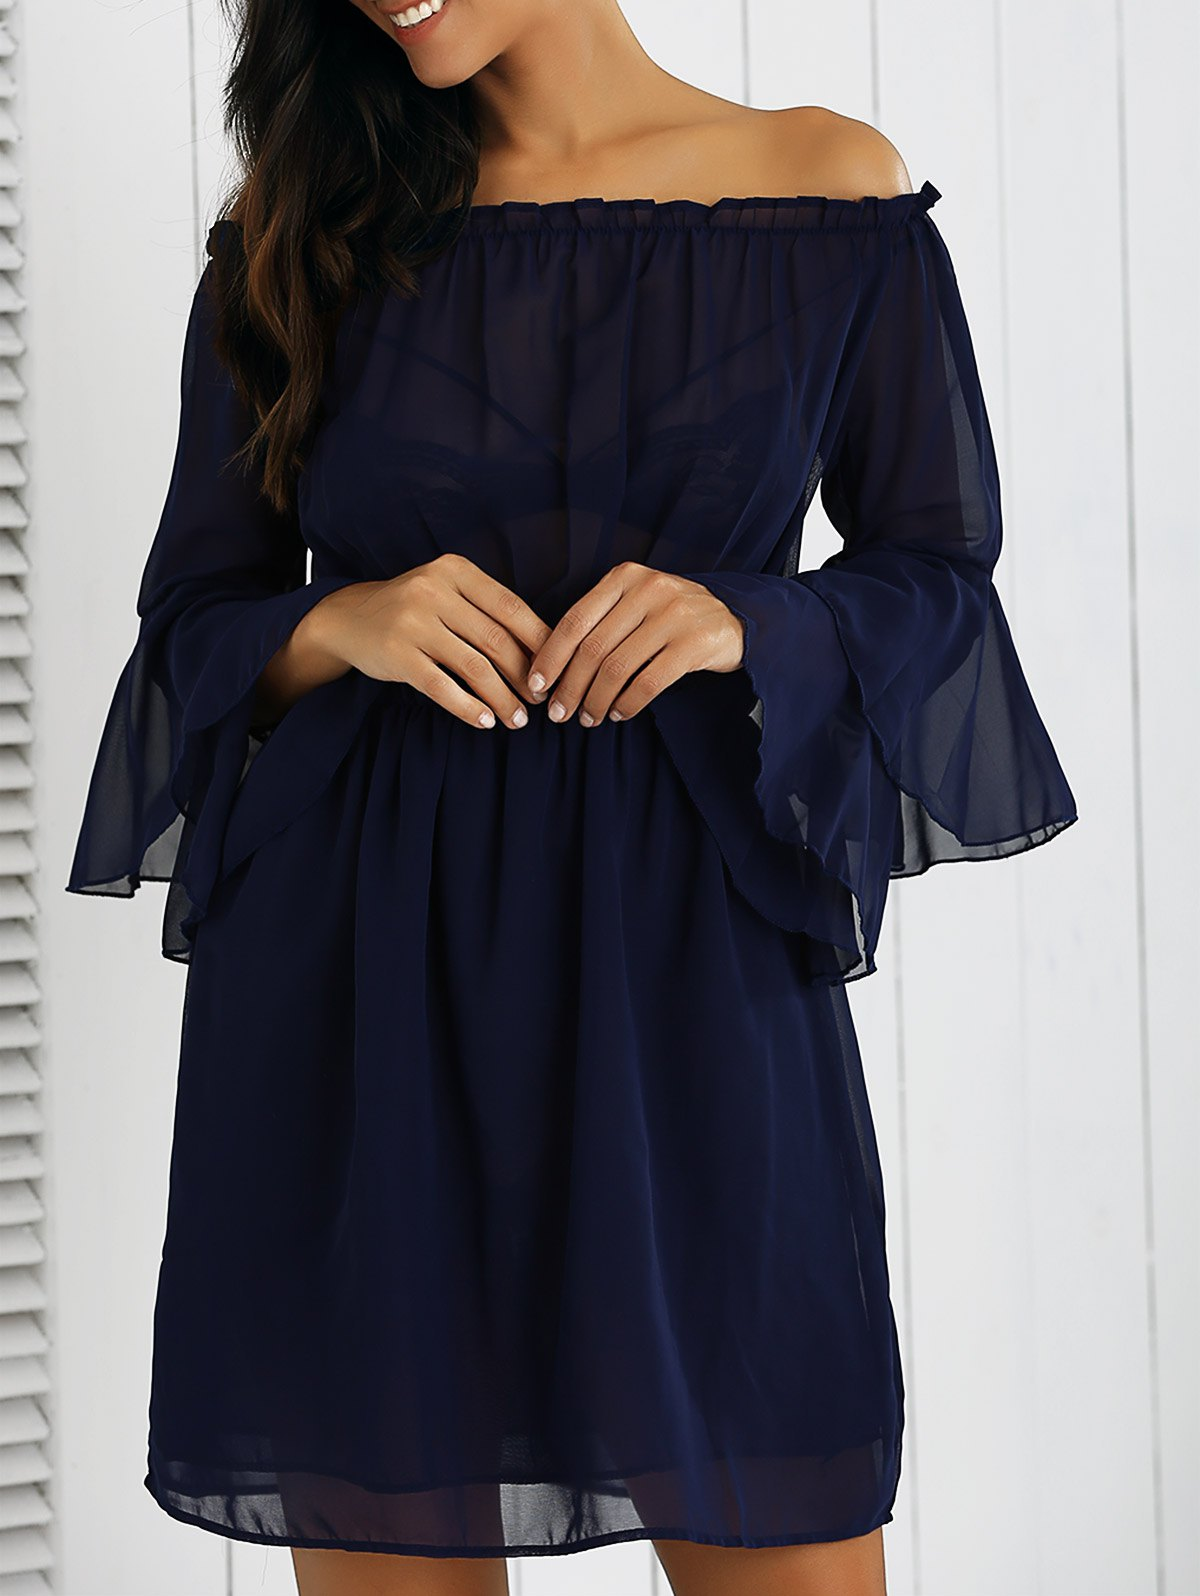 Off The Shoulder Chiffon Dress